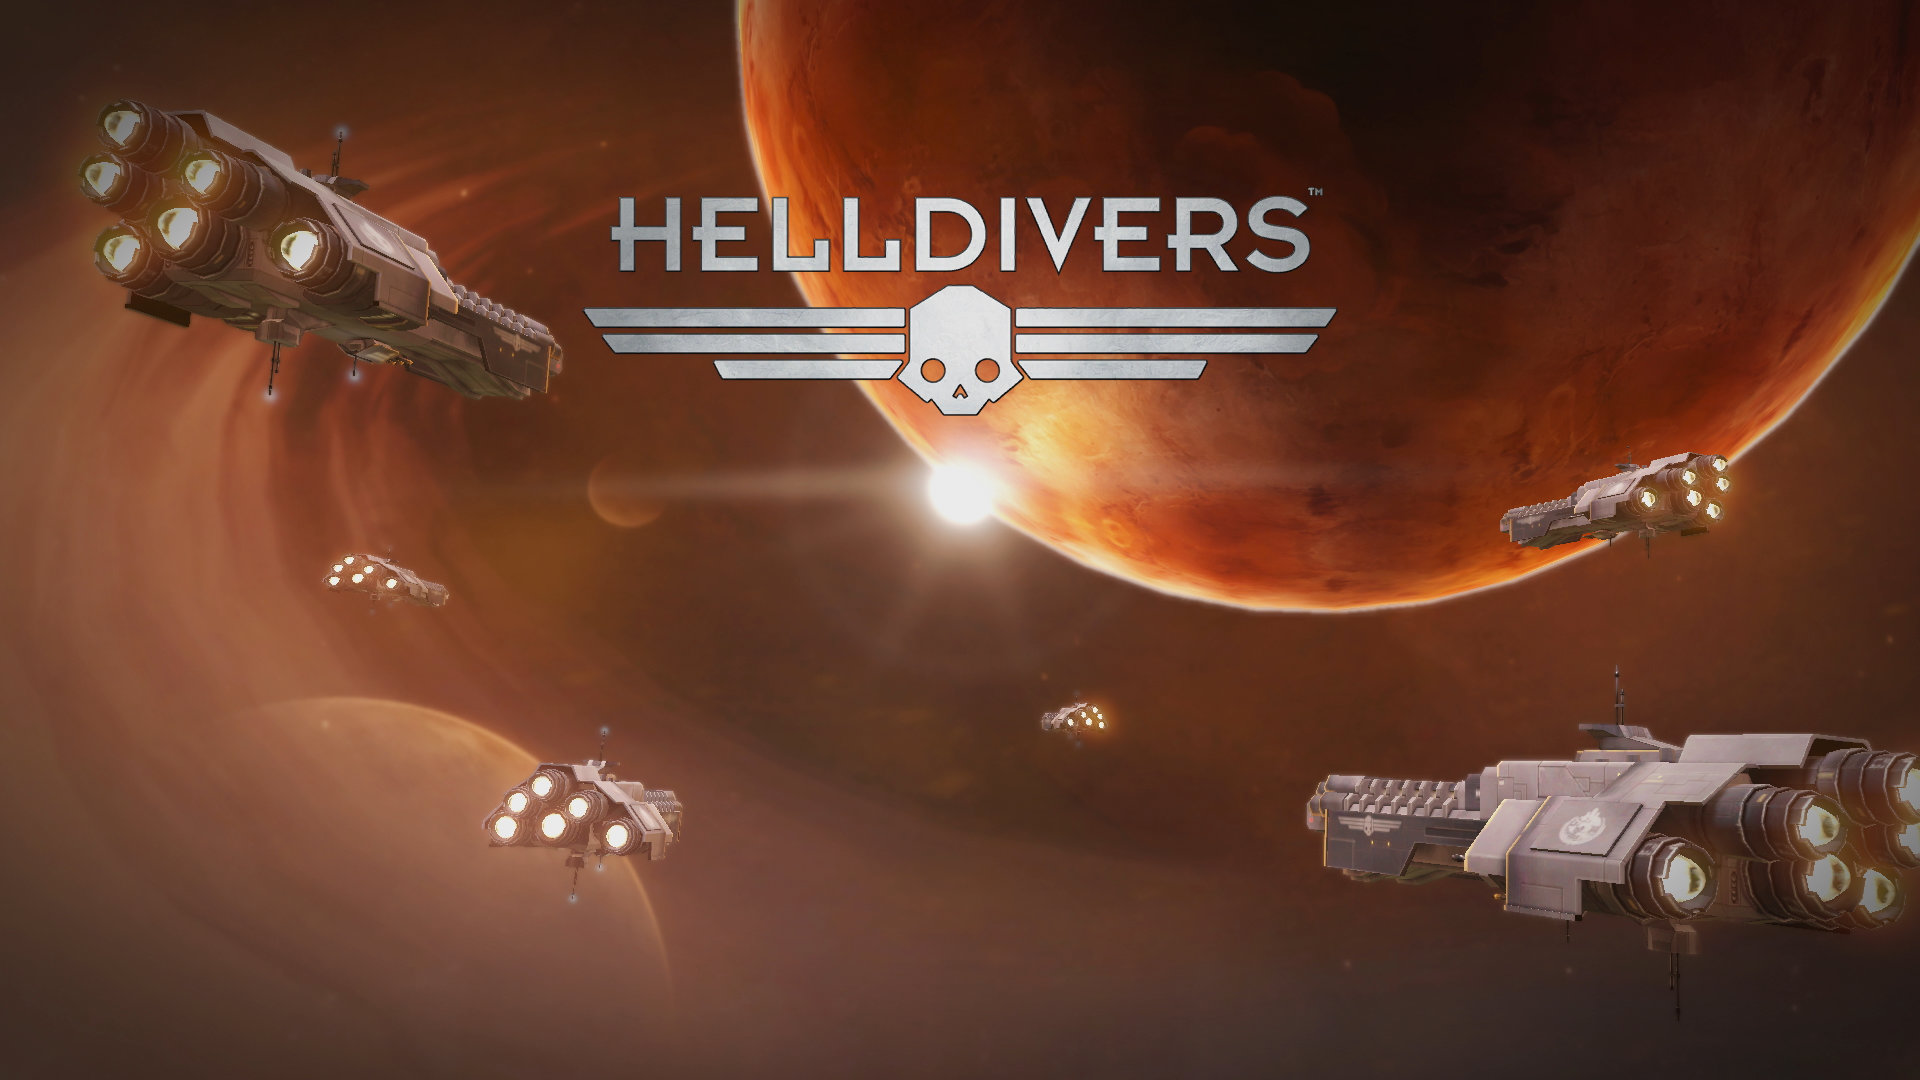 PS4 HELLDIVERS Title screen Desert